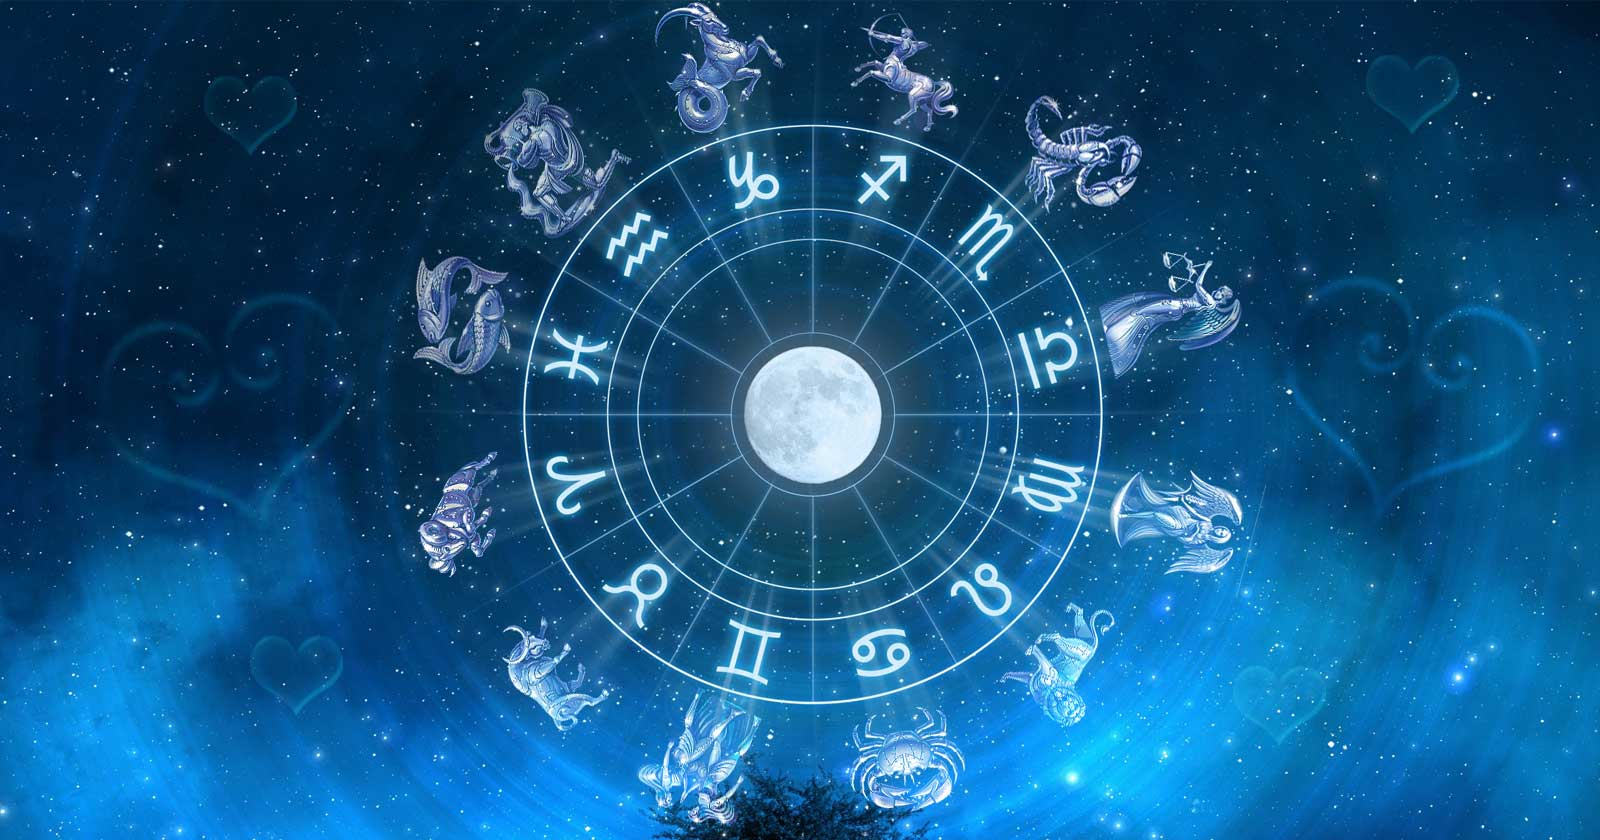 Is your zodiac sign compitable with your Partner's?